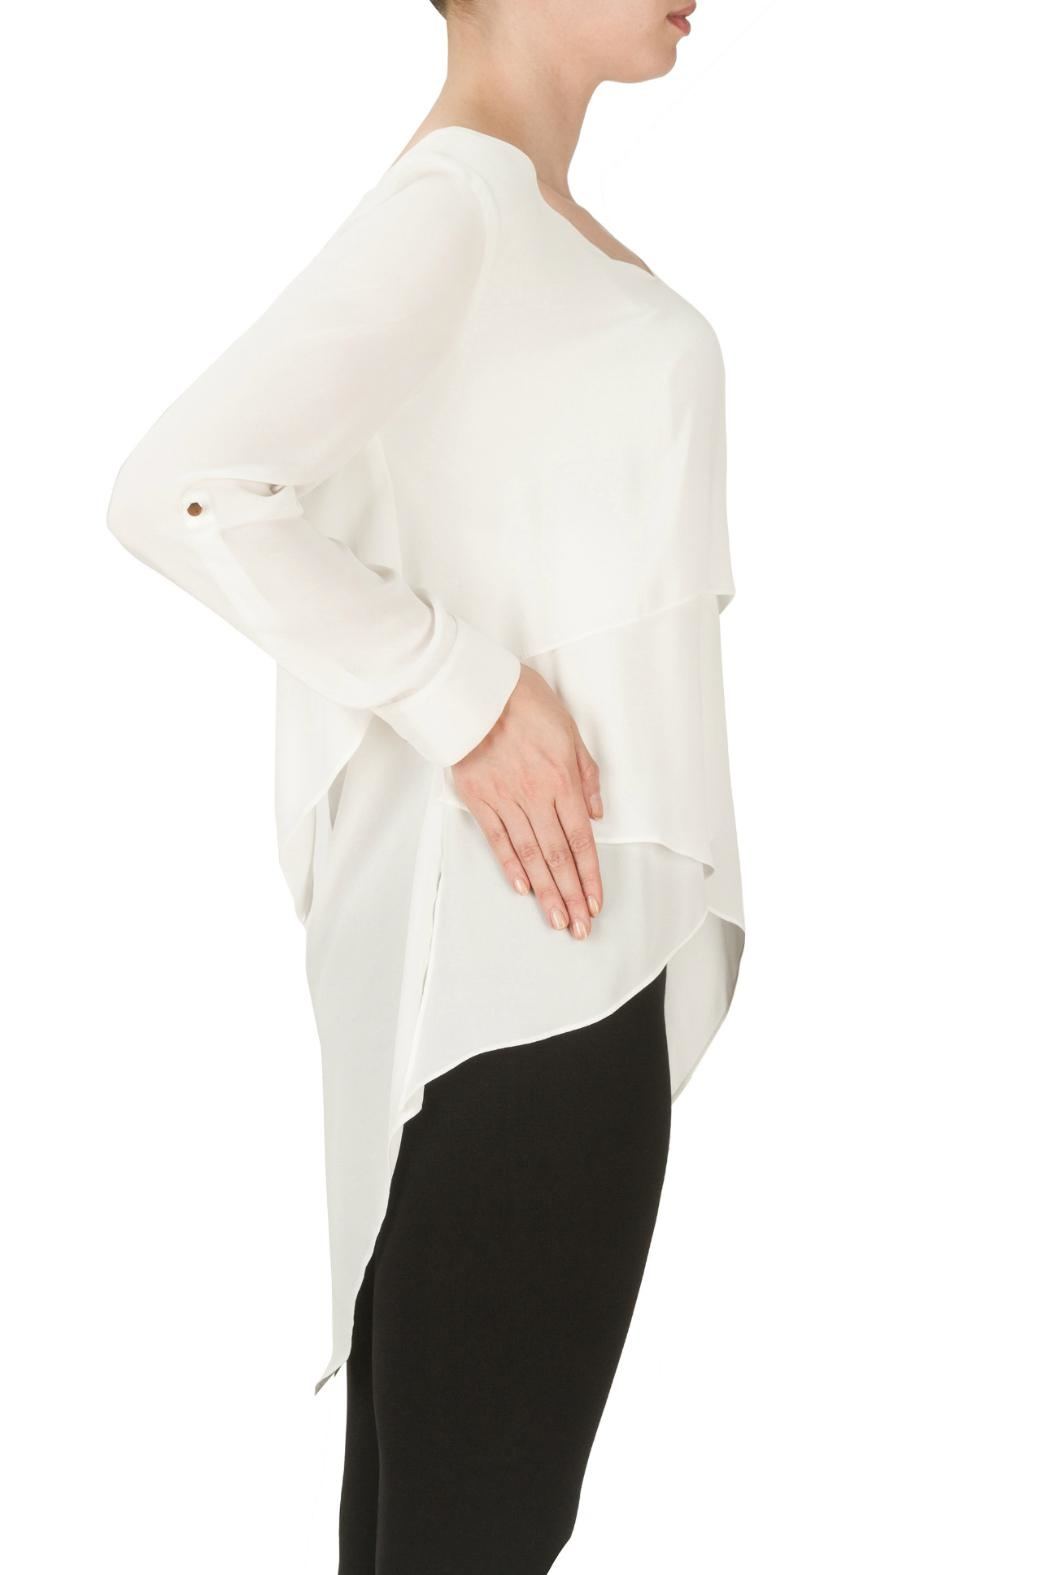 Joseph Ribkoff Layer Cuffed Blouse - Front Full Image